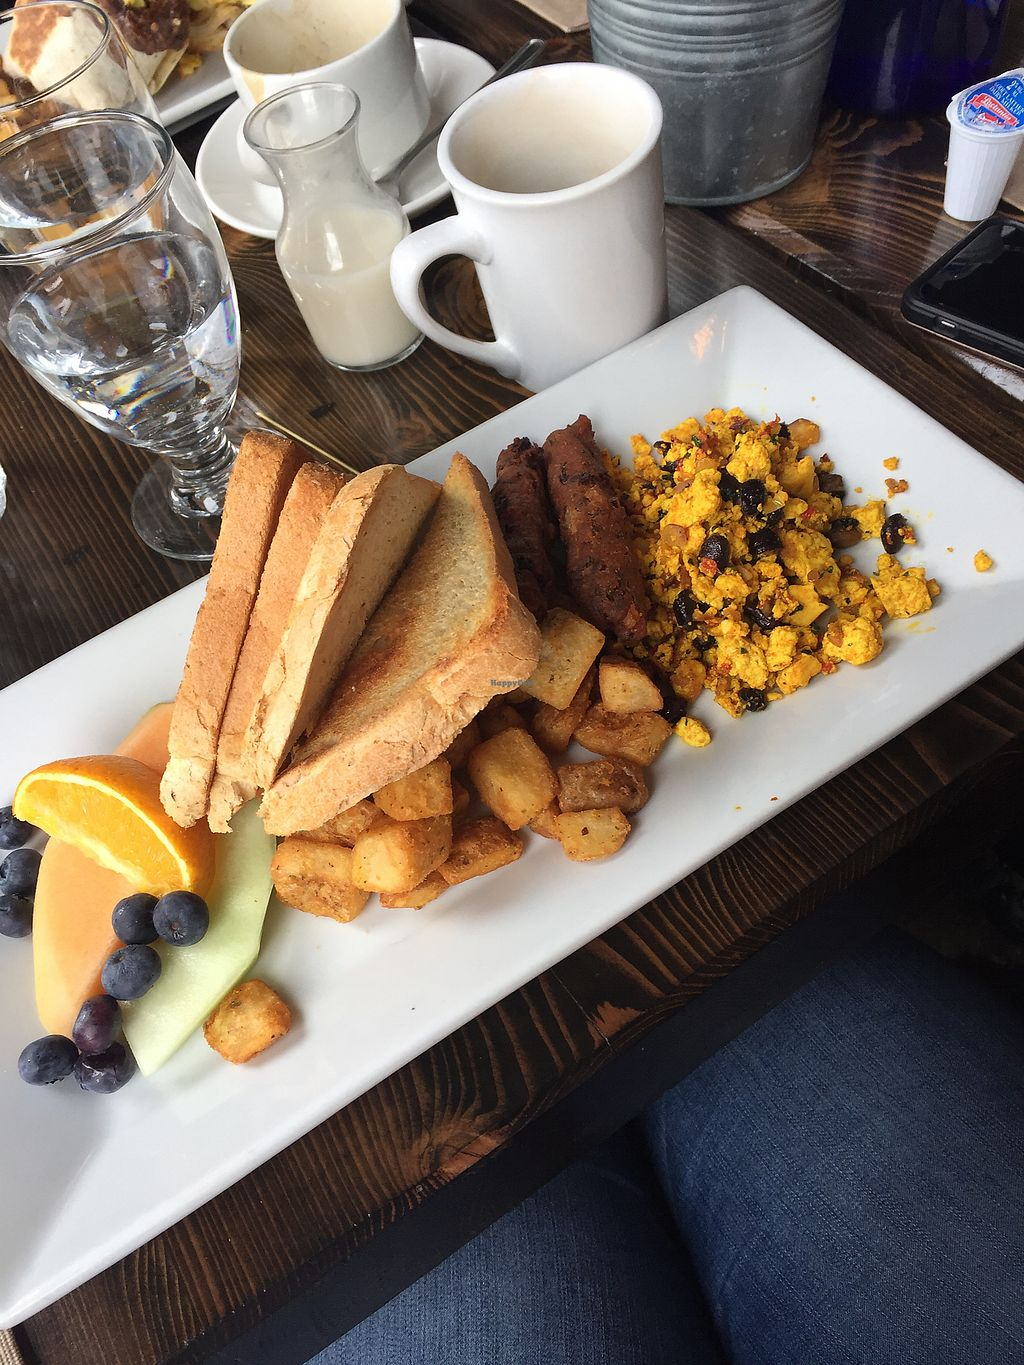 """Photo of L'Gros Luxe  by <a href=""""/members/profile/EricaEff"""">EricaEff</a> <br/>The Classic. VERY small portion of tofu scramble (barely even a 1/3 of the plate). Dry toast since they don't have vegan butter <br/> February 11, 2018  - <a href='/contact/abuse/image/110637/358104'>Report</a>"""